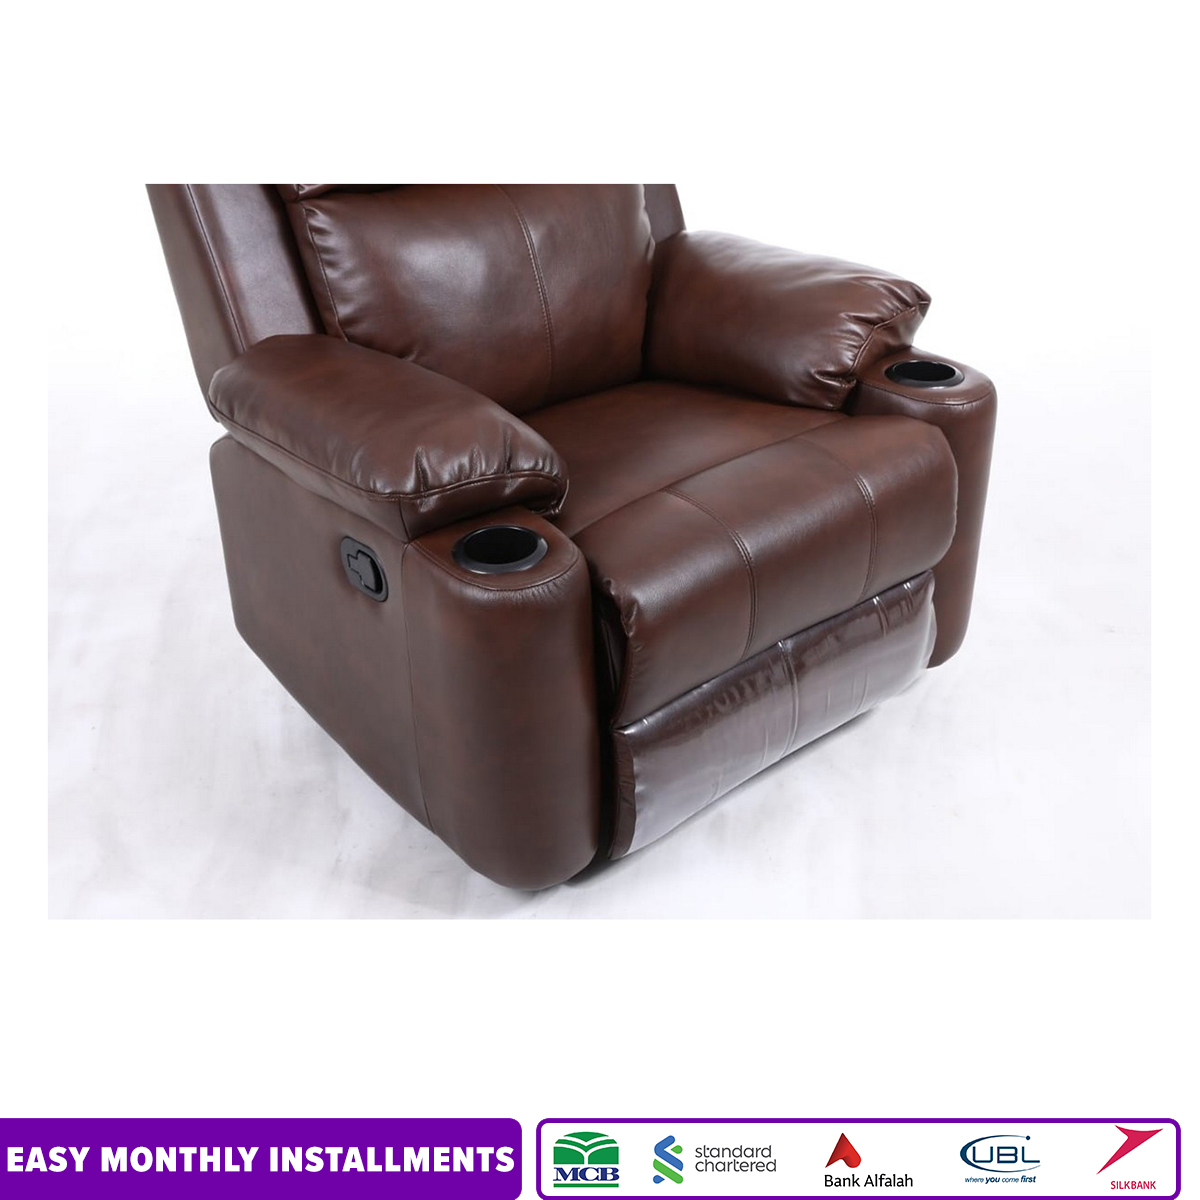 Imported Manual Recliner Sofa With Rocker and Rotational Funtions